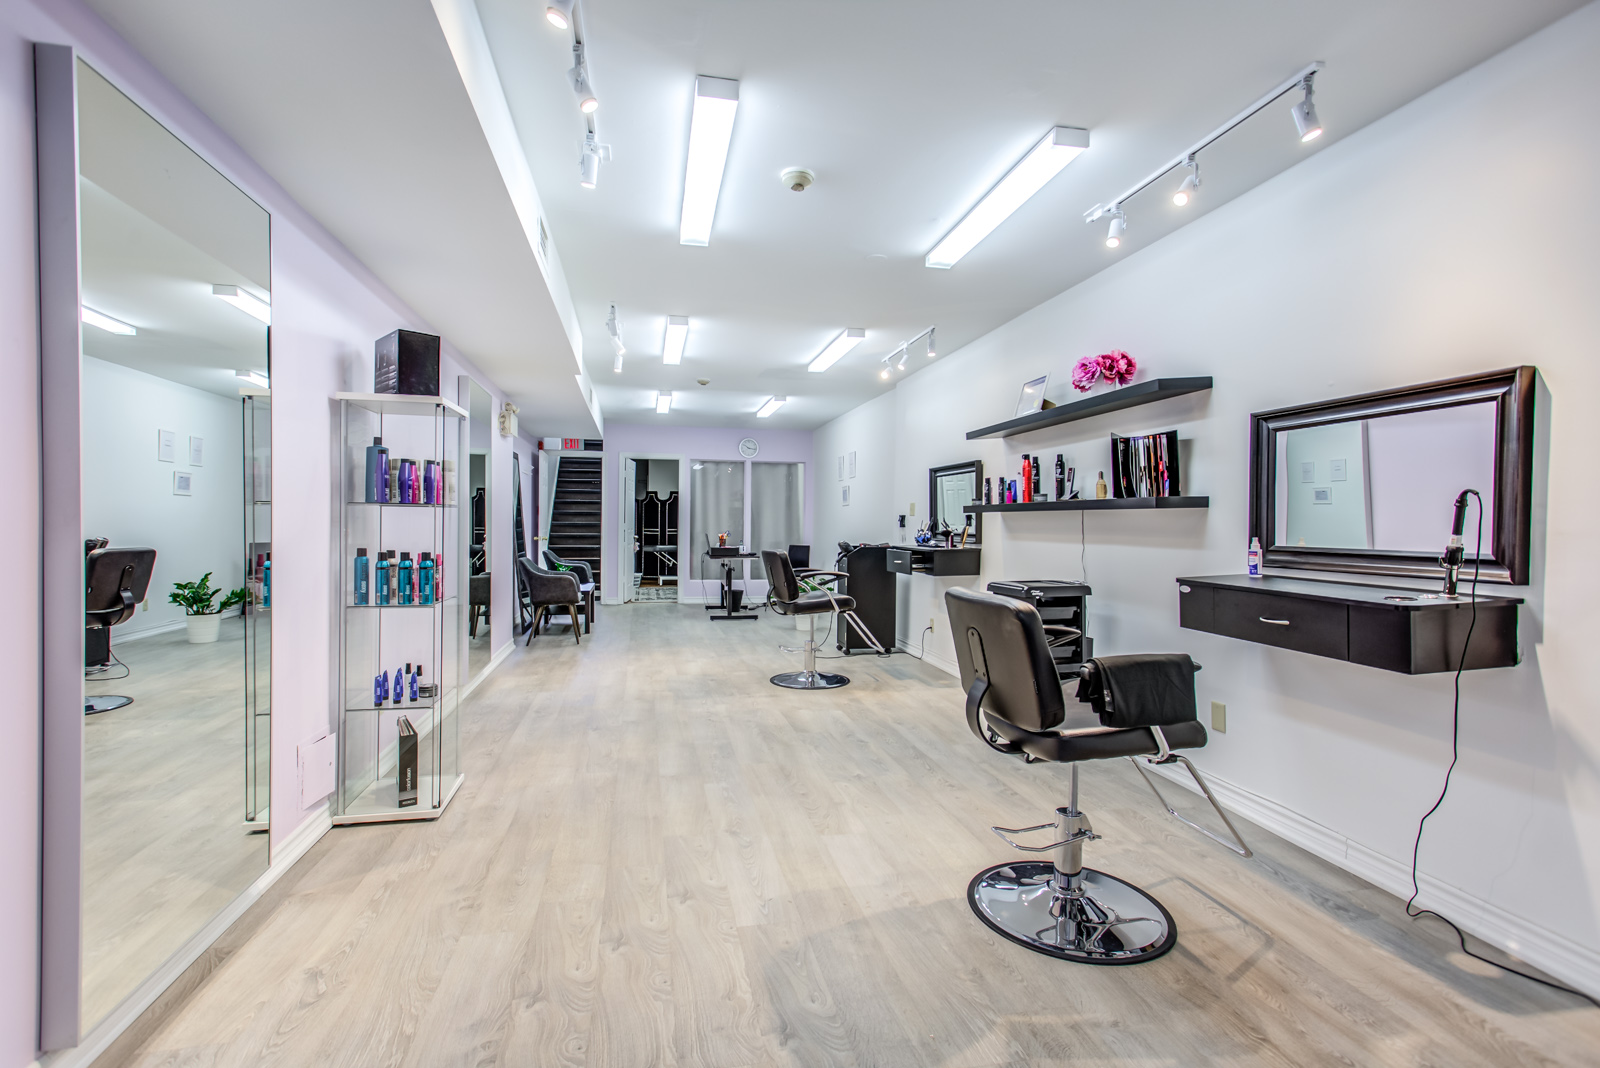 642 queen street west interior; hair salon with styling chairs and other items.